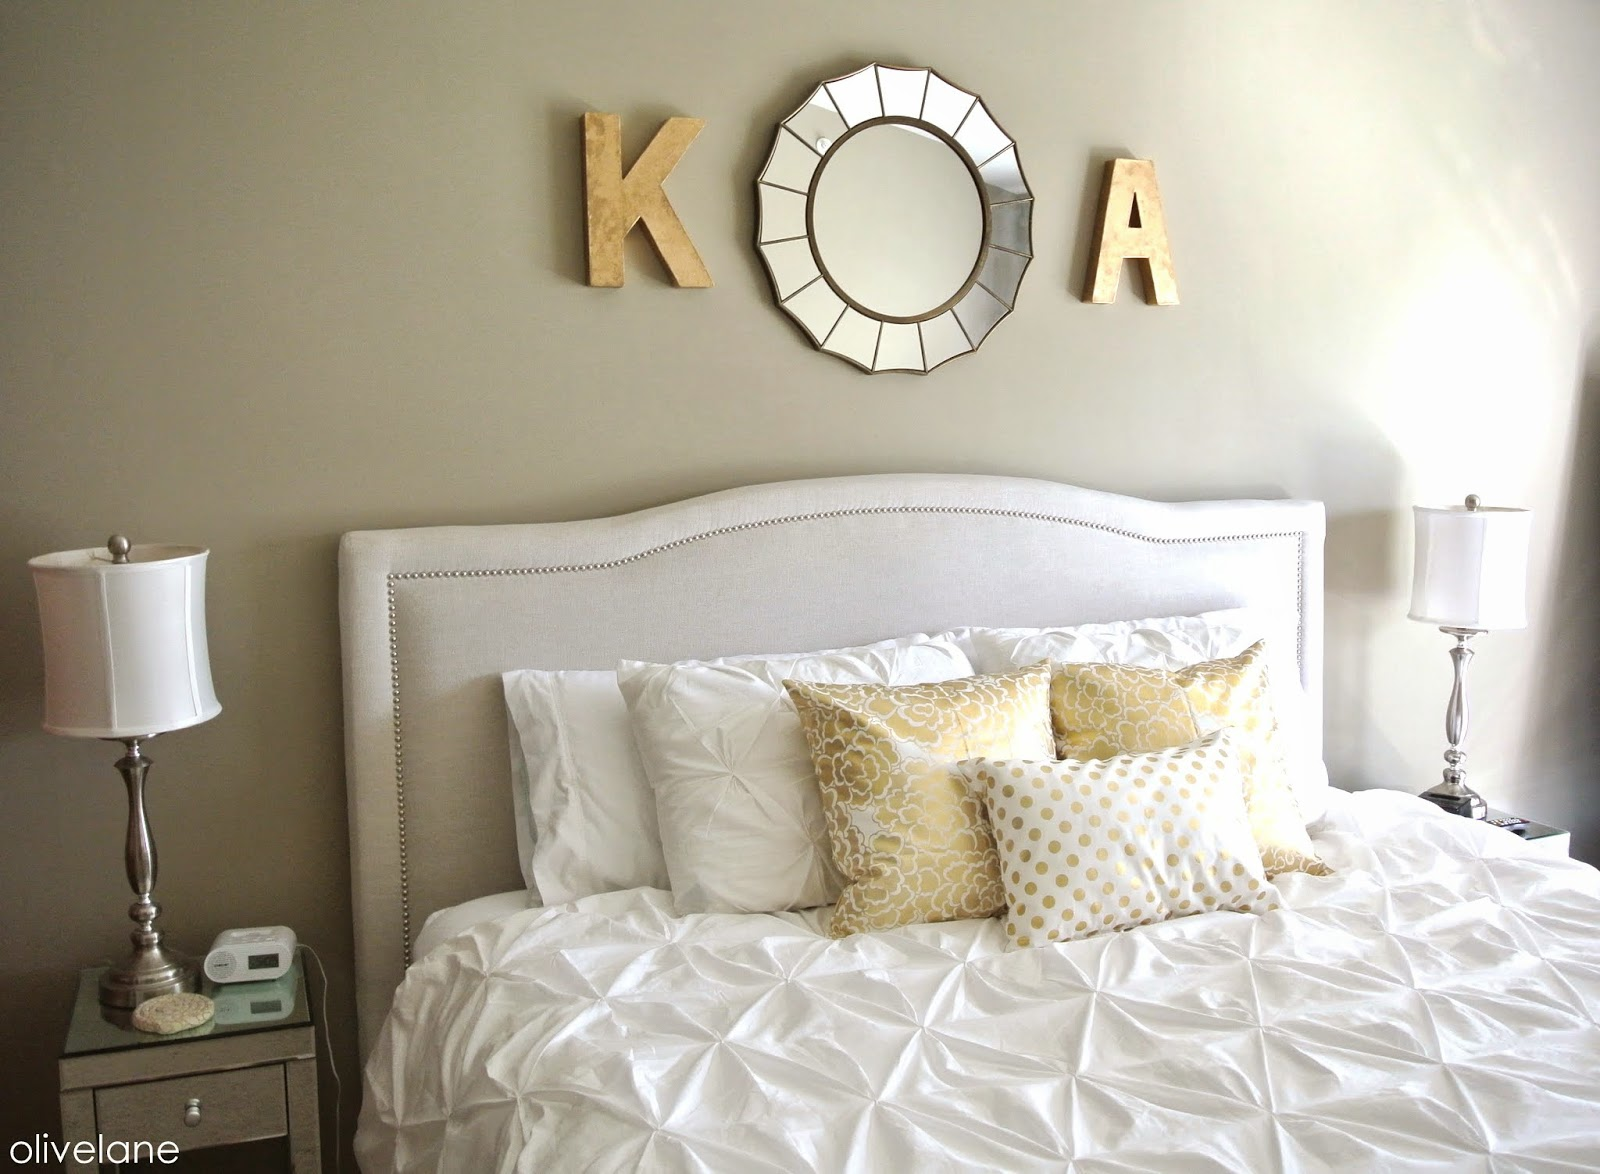 Olive lane master bedroom update gold white - White and gold room ...